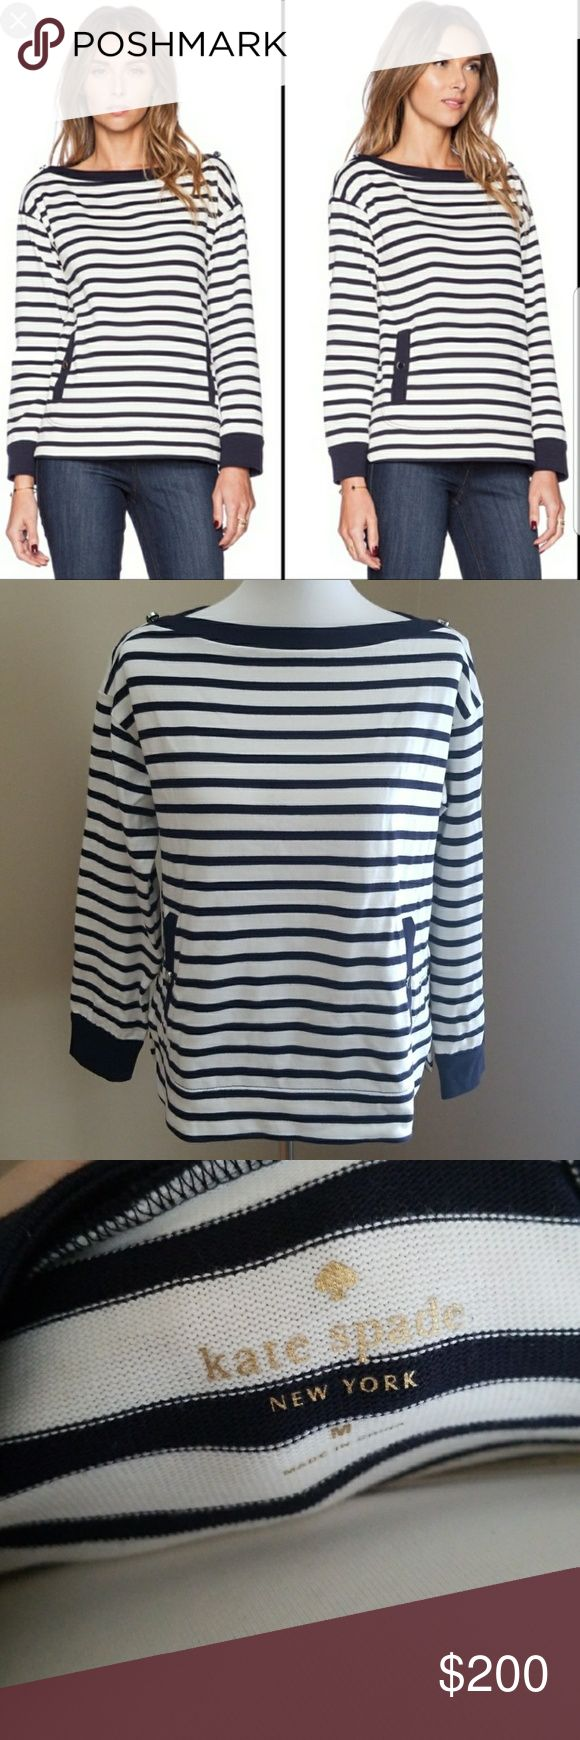 Kate Spade Striped Boatneck Top Kate Spade Striped Boatneck Top, size Medium  NWOT.  I removed the tag thinking I was going to take with me on a trip,  but I never did take the top with.  Never been worn. kate spade Tops